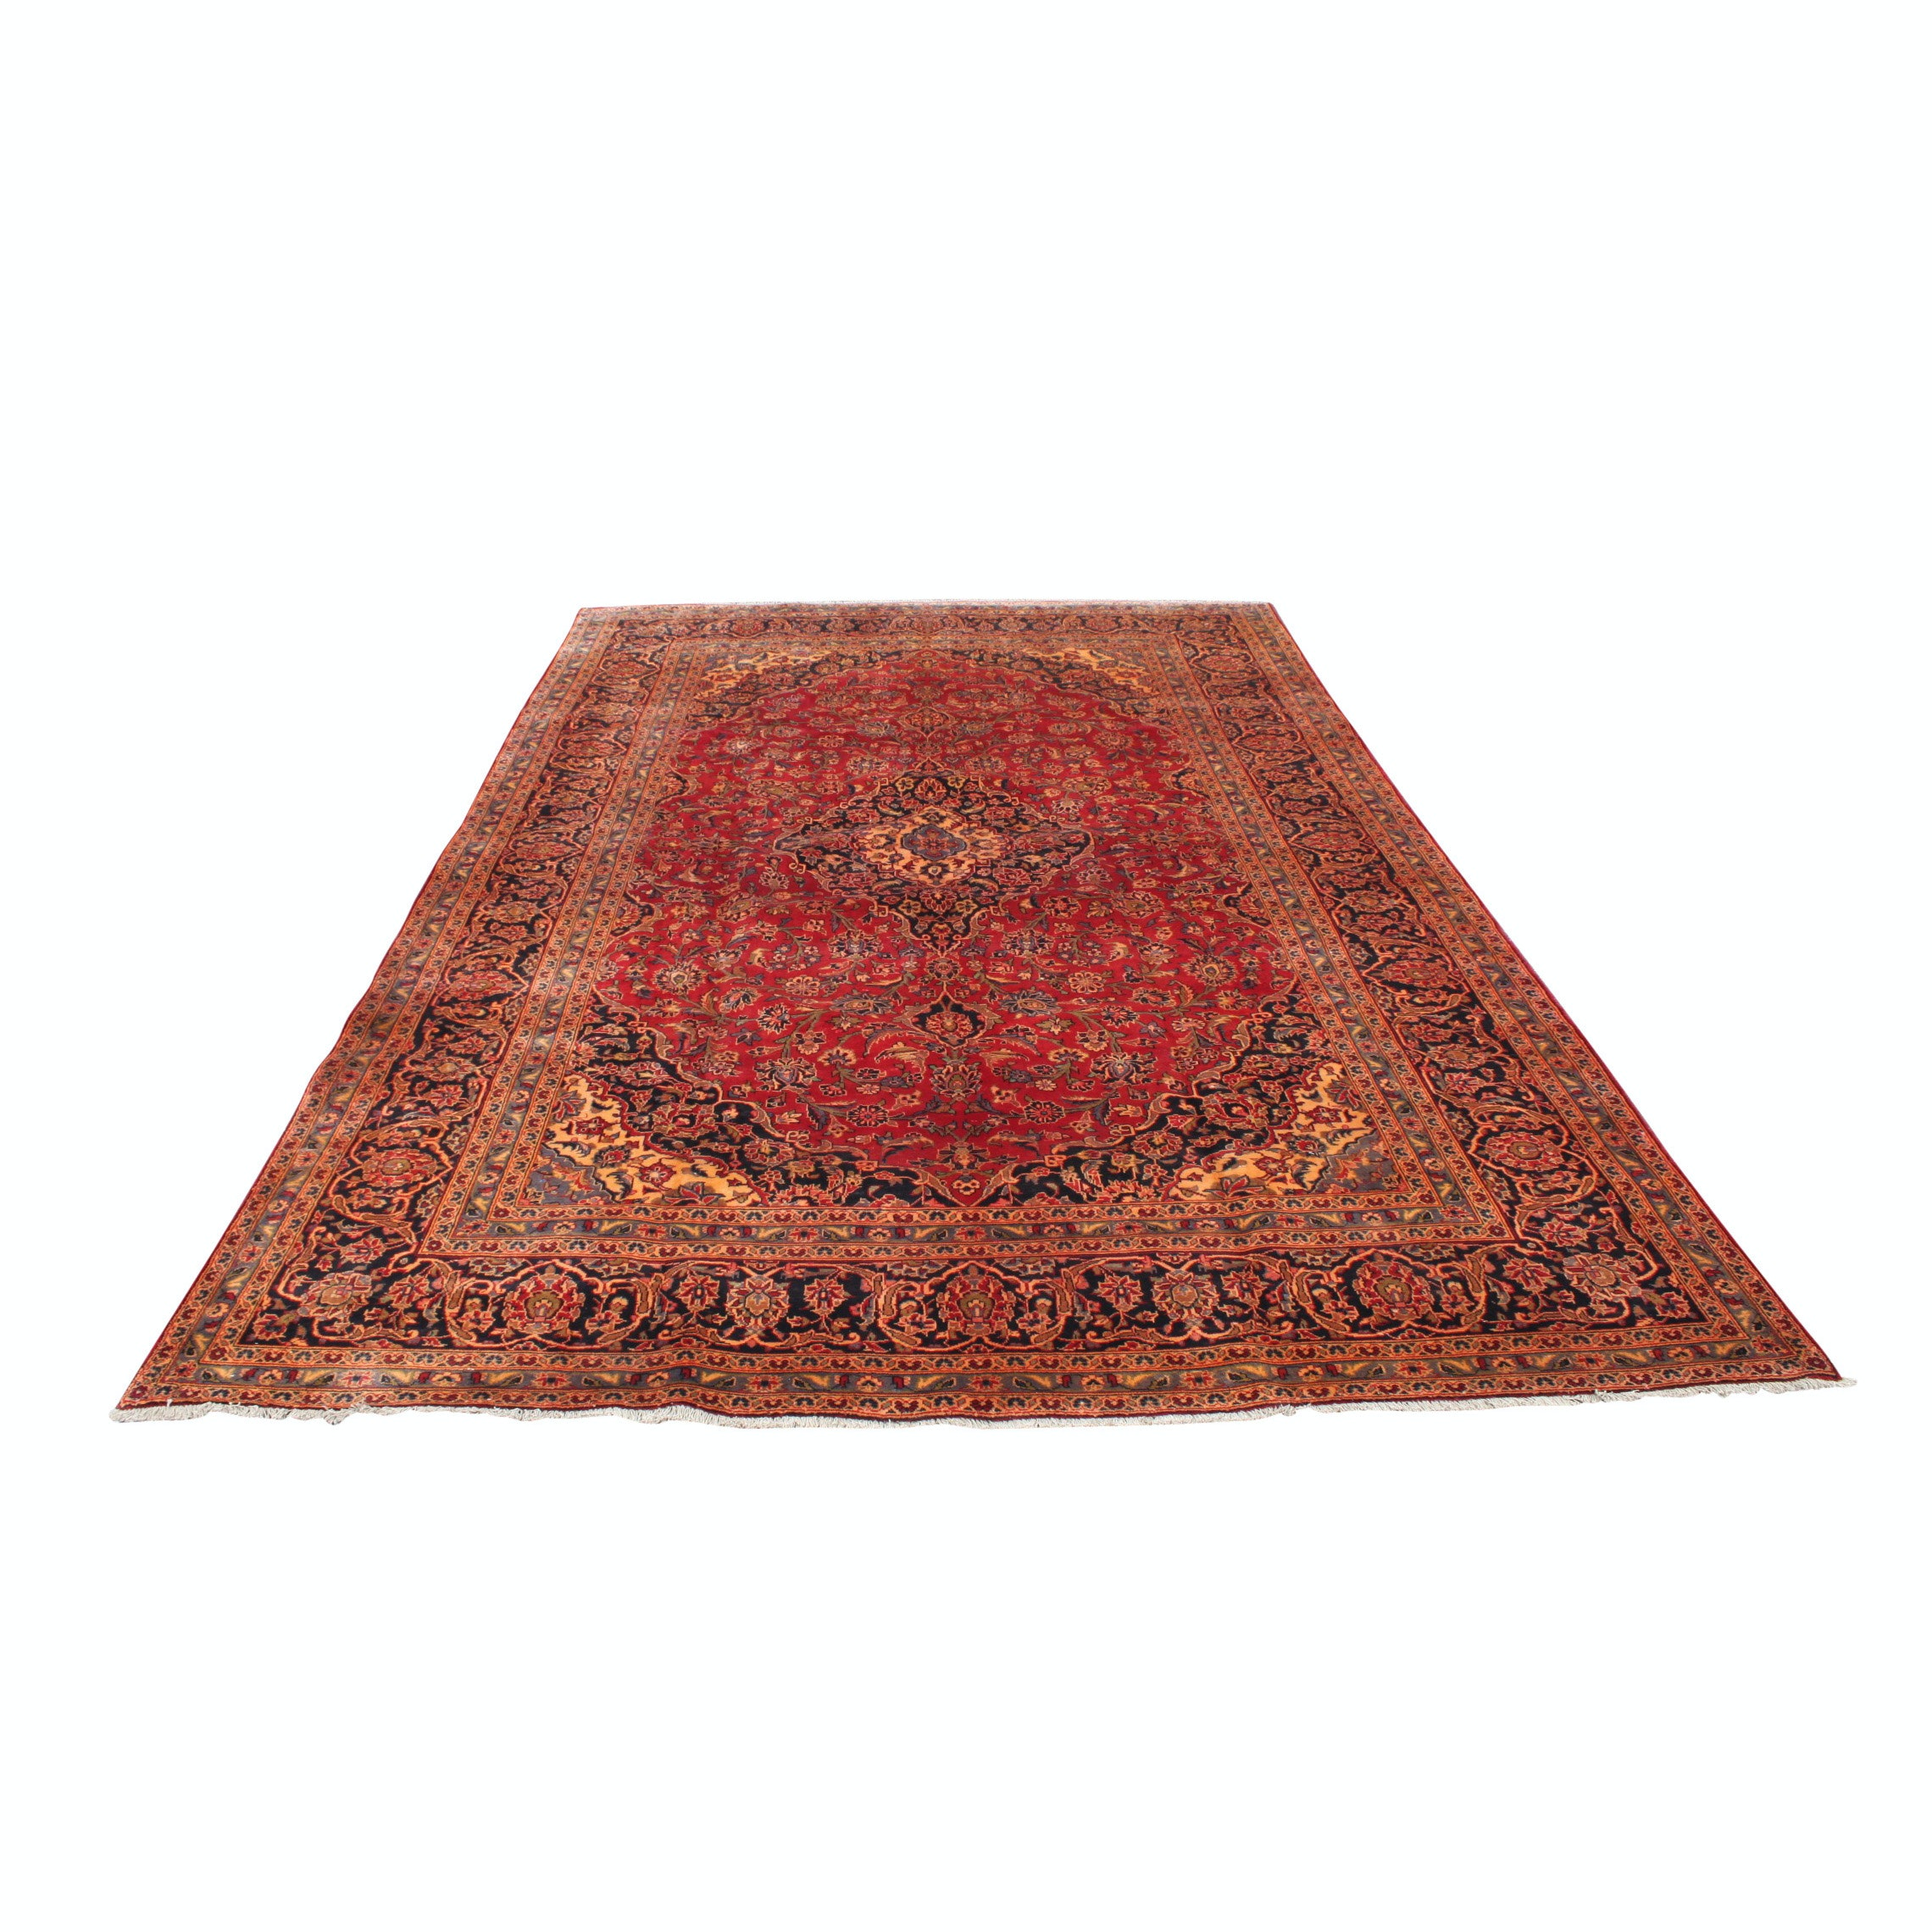 Handknotted Vintage Persian Kashan Palace Rug